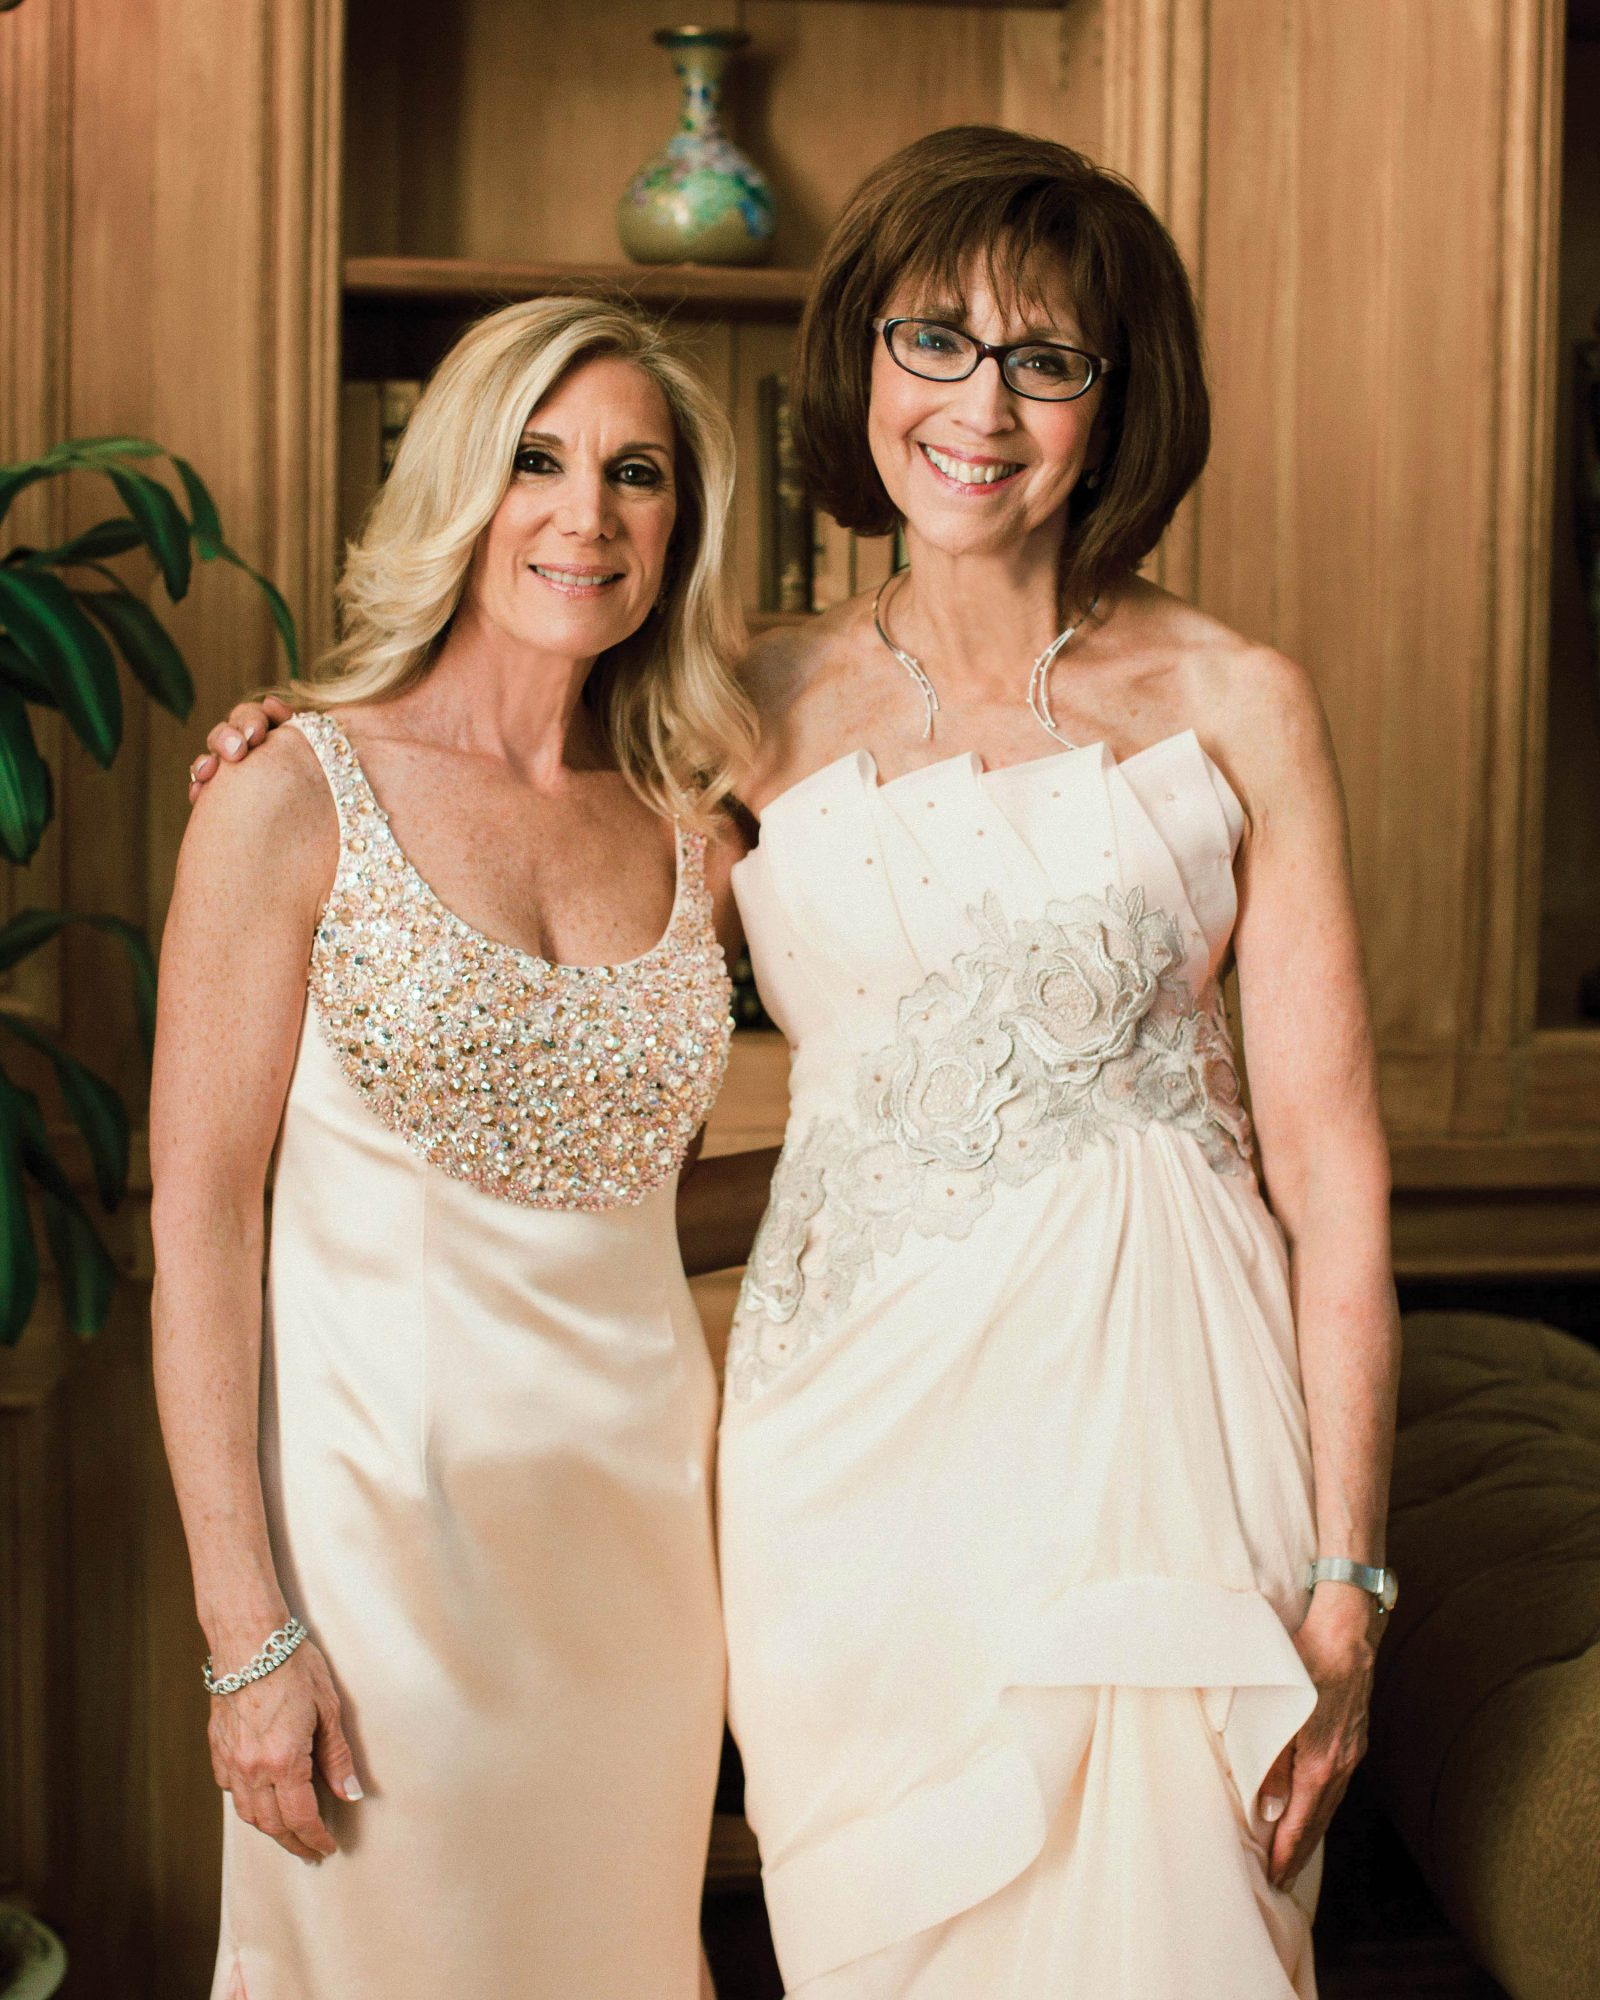 Wedding Makeup Tips Every Mother Of The